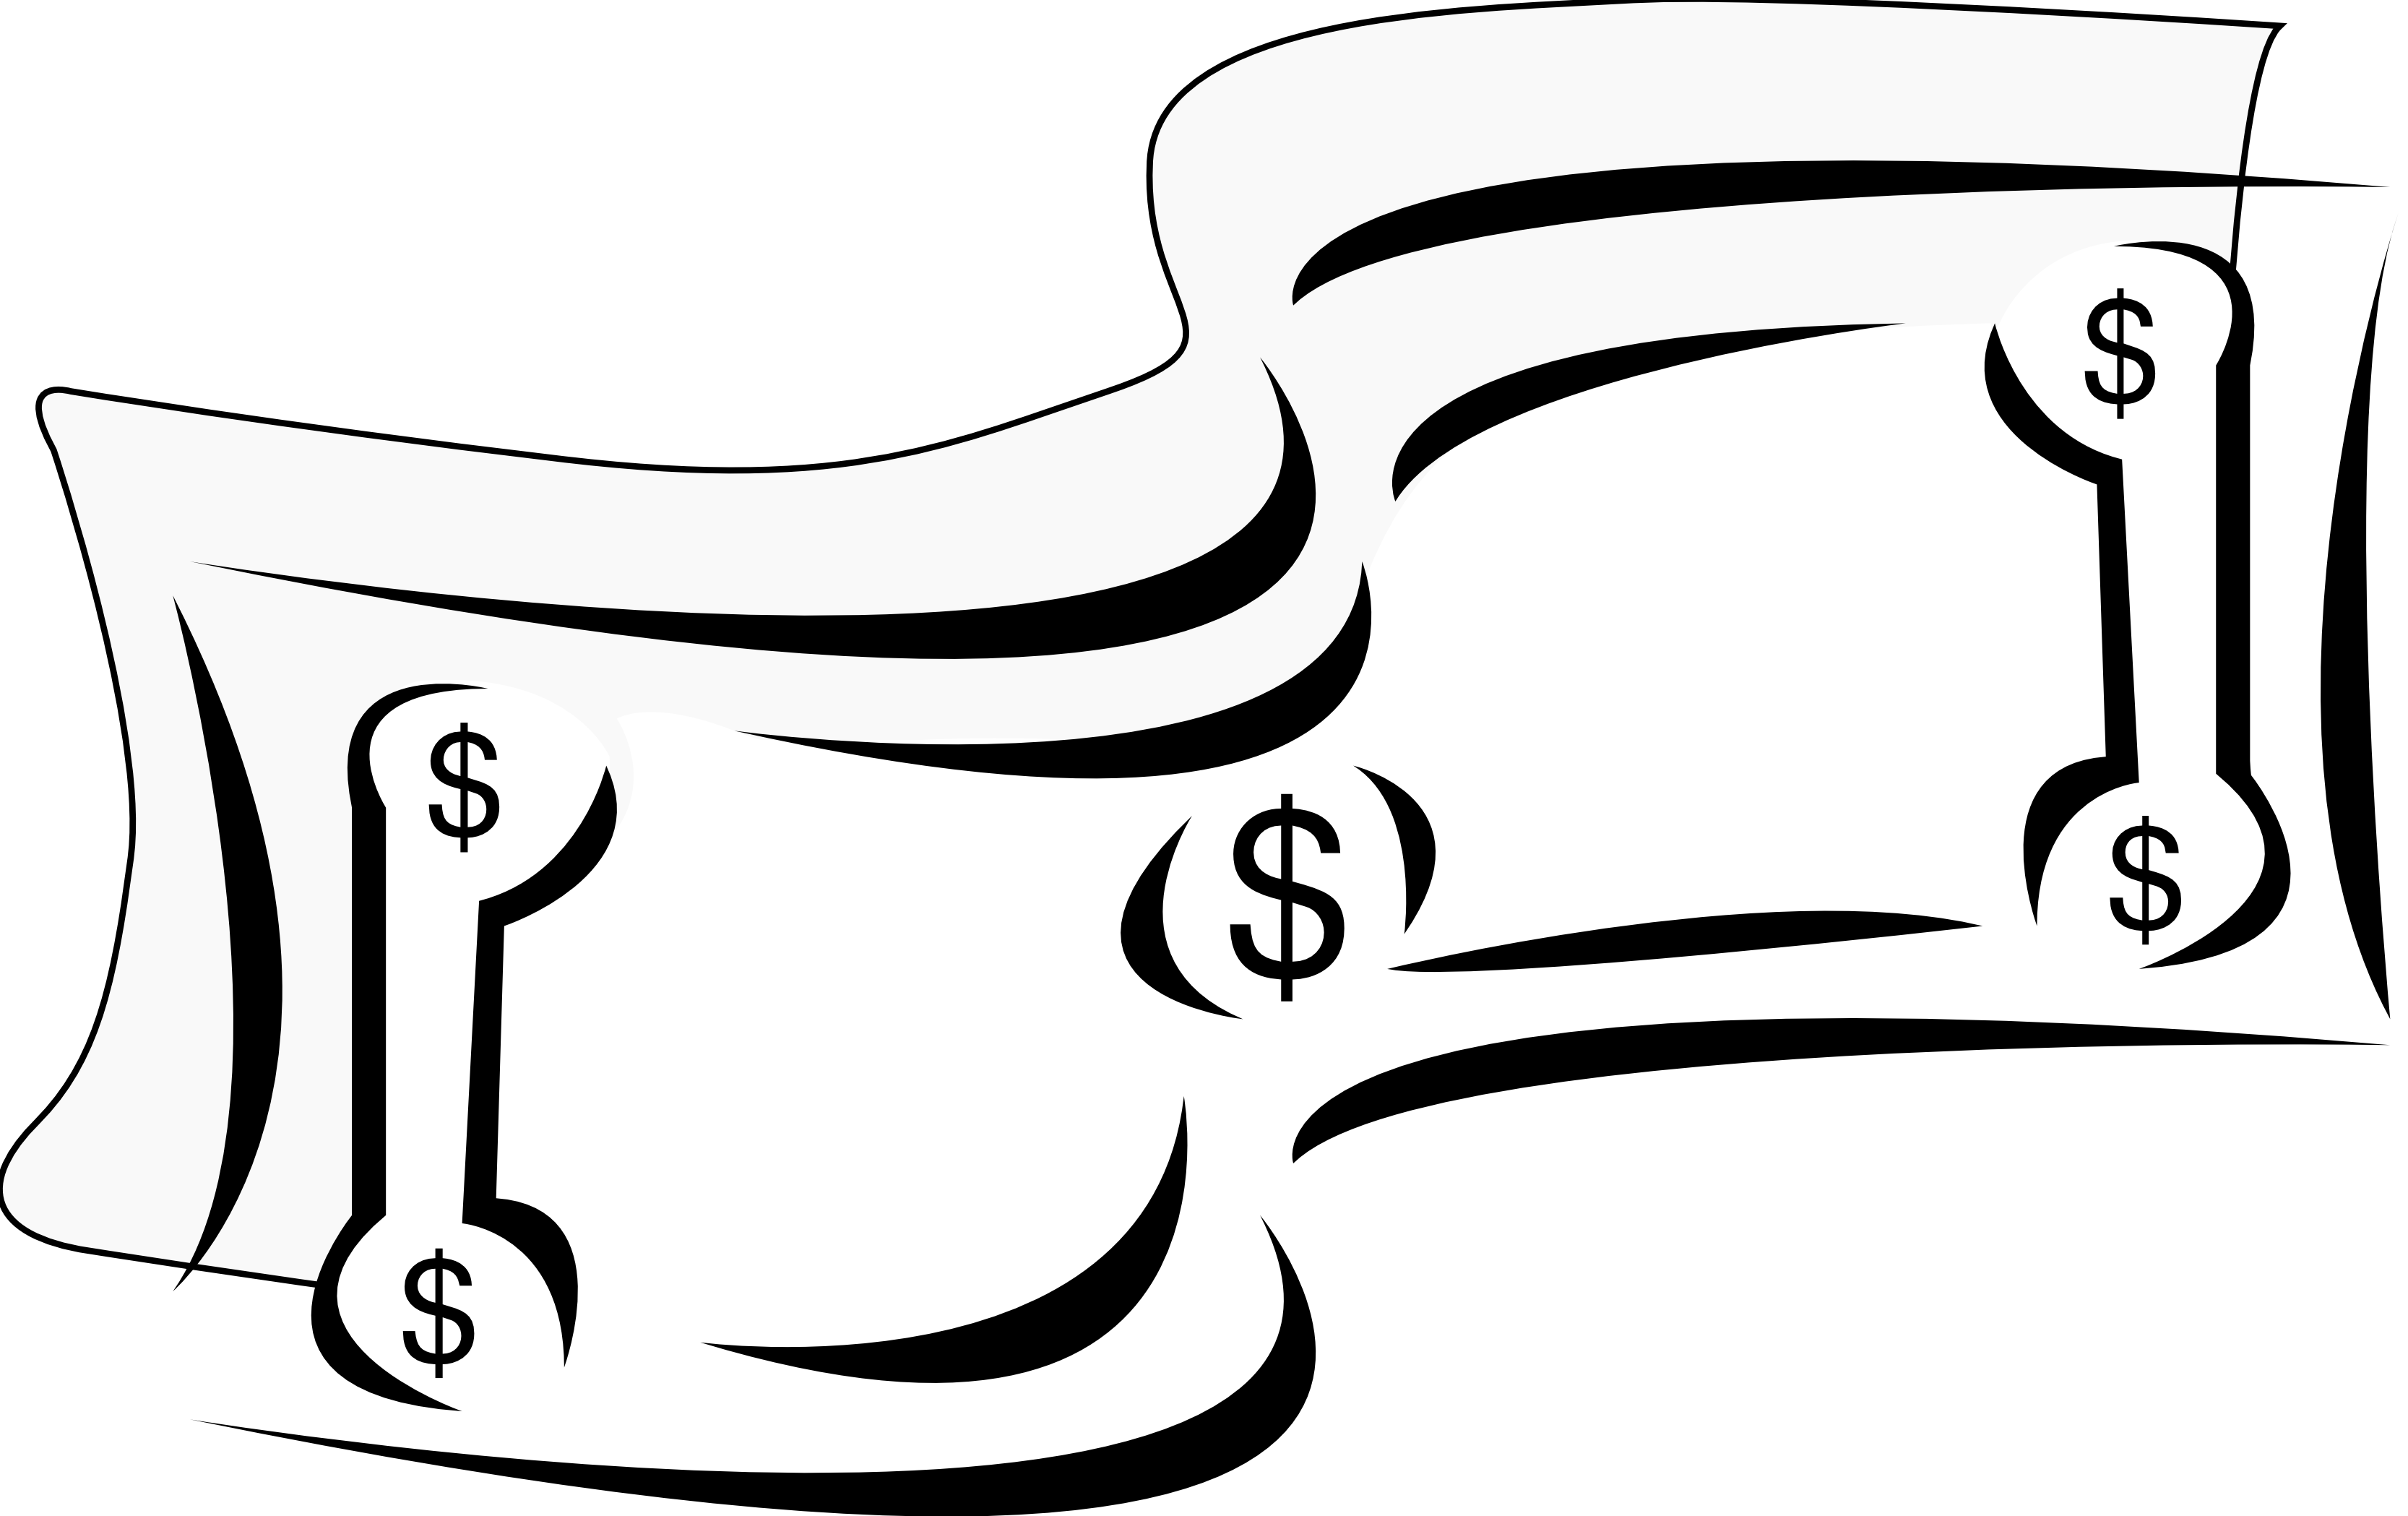 Dollar Sign Clip Art Black and White